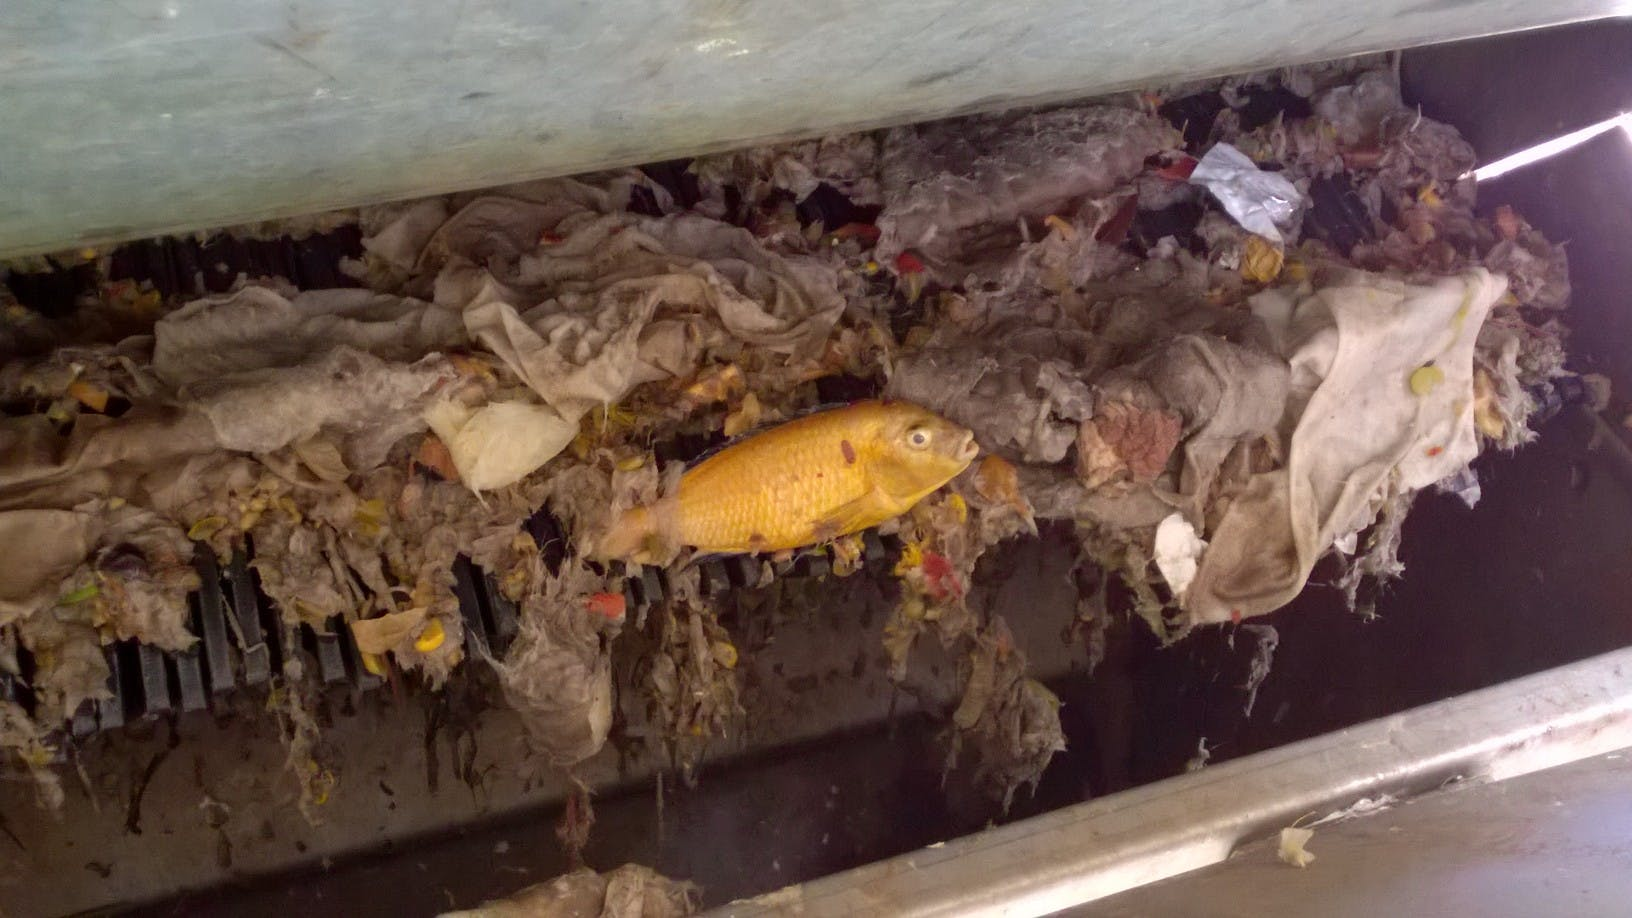 The interesting things we find at our Wastewater Treatment Plants.